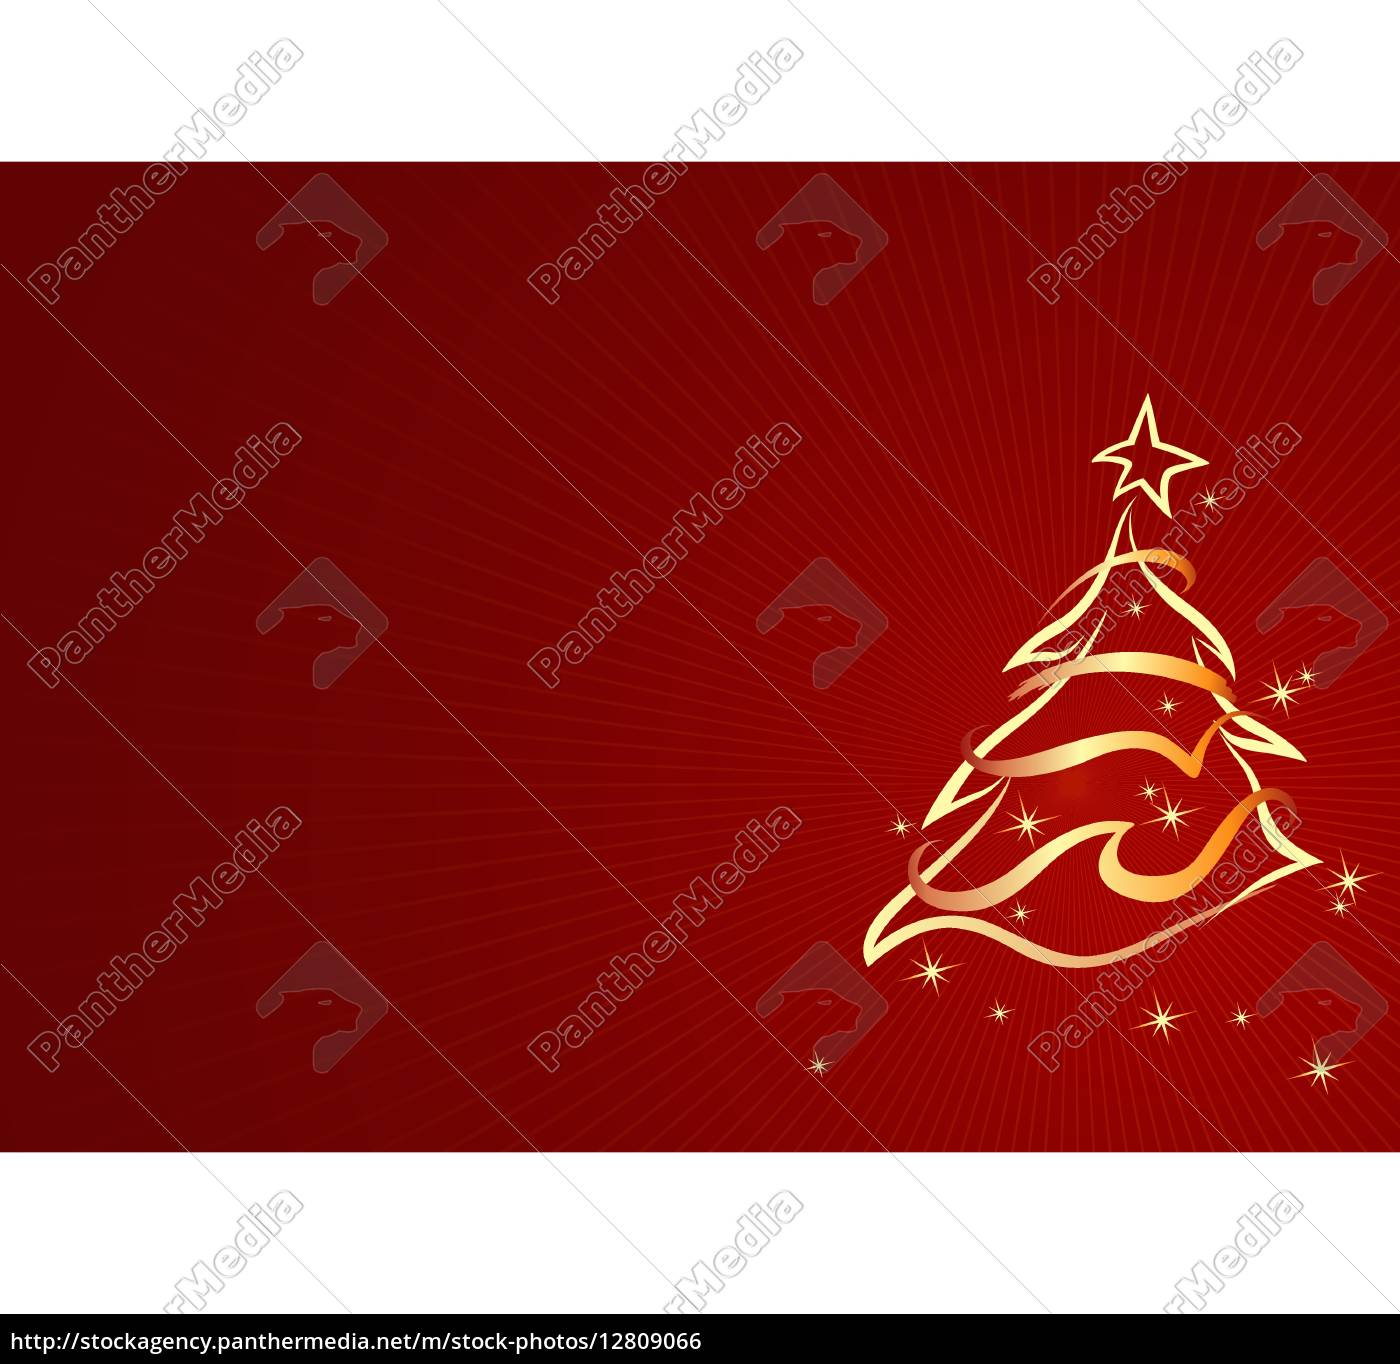 gold abstrakt xmas tree weihnachten hintergrund stock photo 12809066 bildagentur. Black Bedroom Furniture Sets. Home Design Ideas